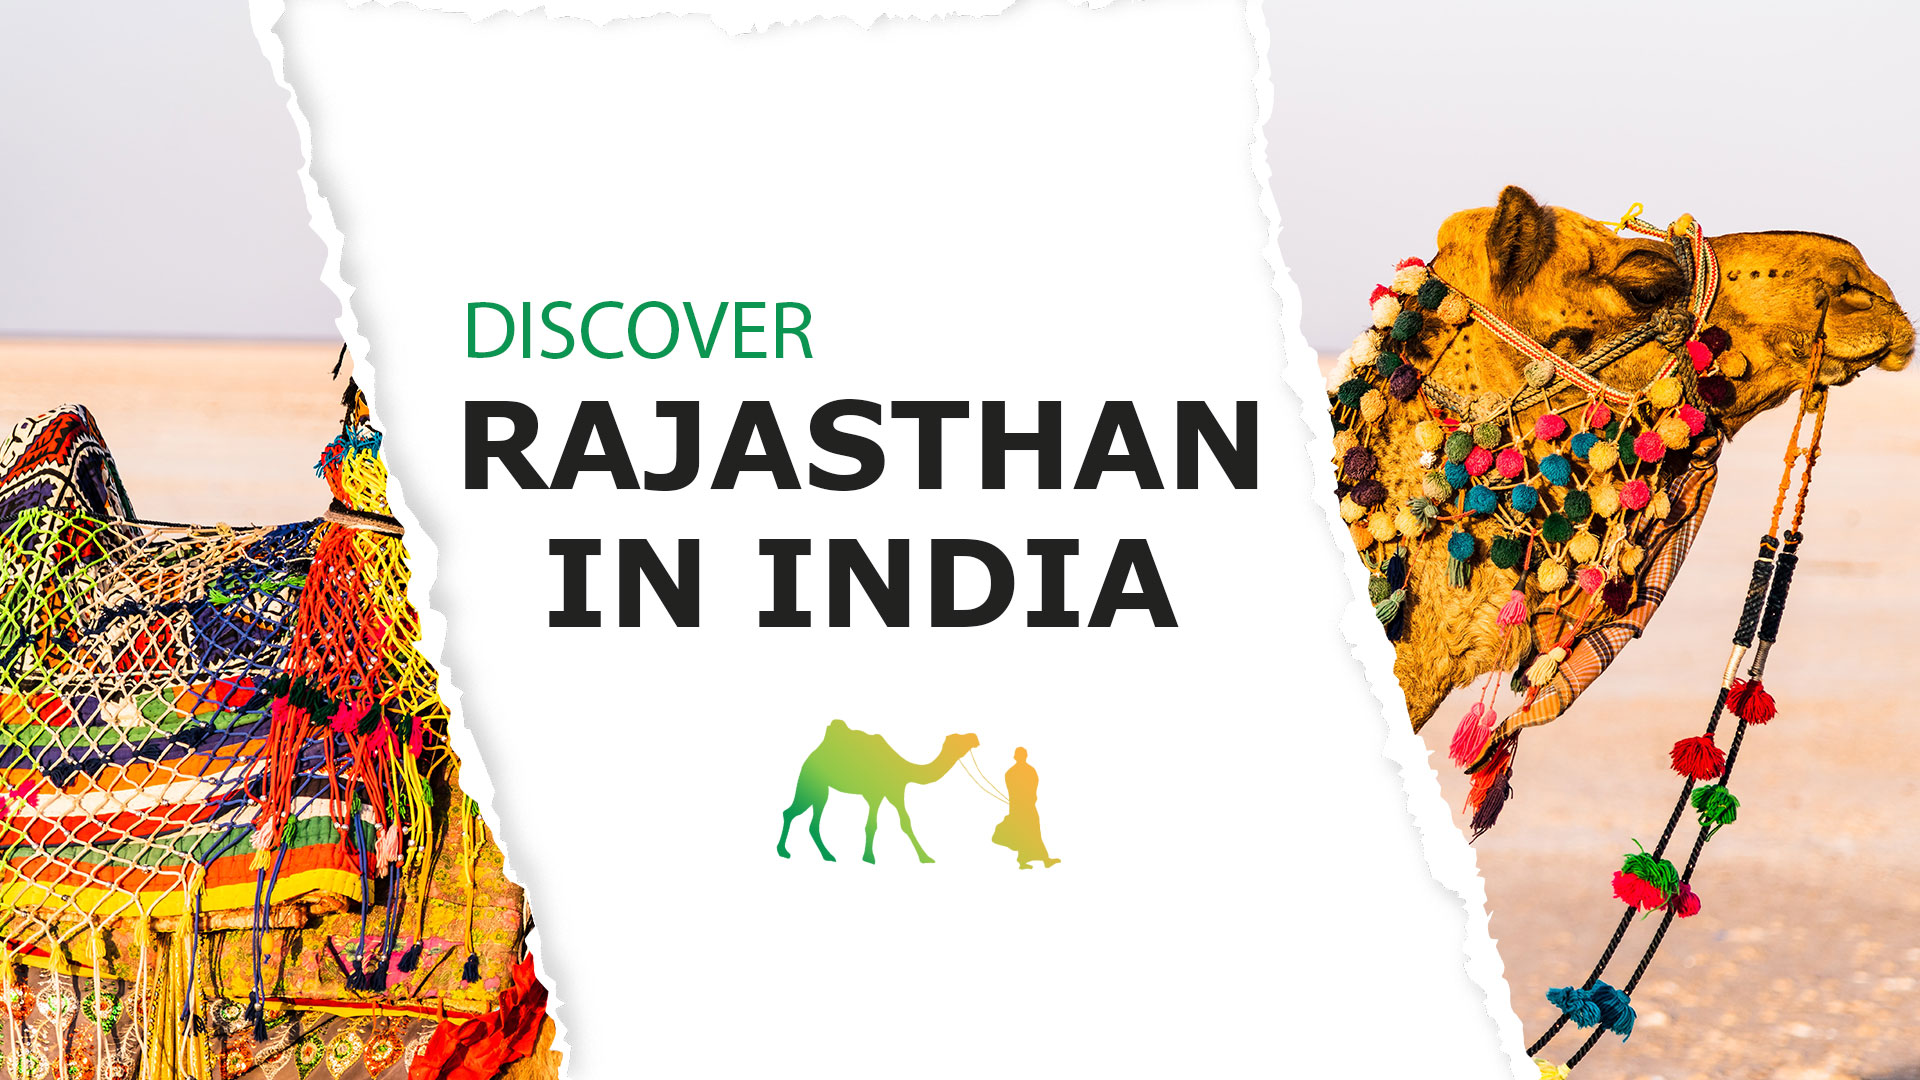 Rajasthan in India